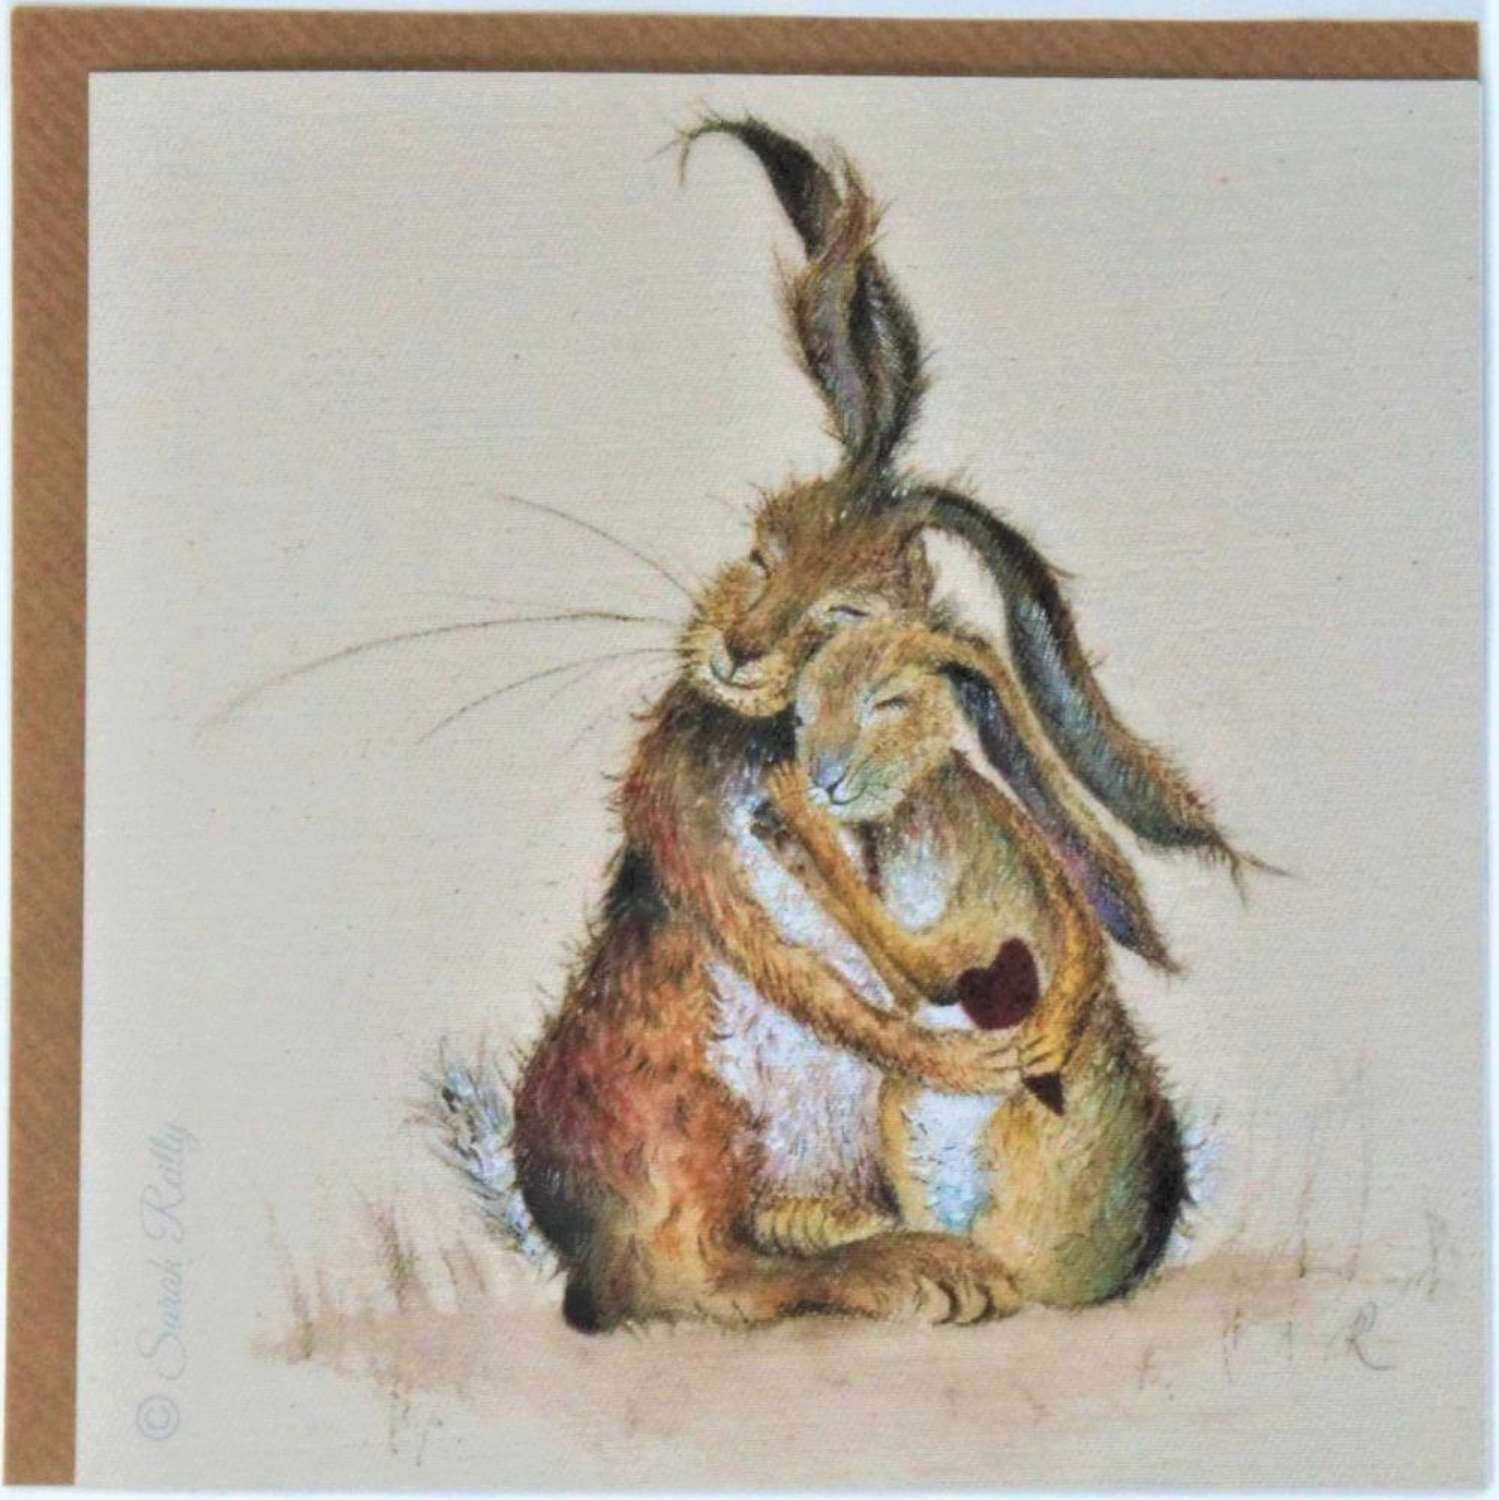 Love Country- Hares my Heart Card by Sarah Reilly